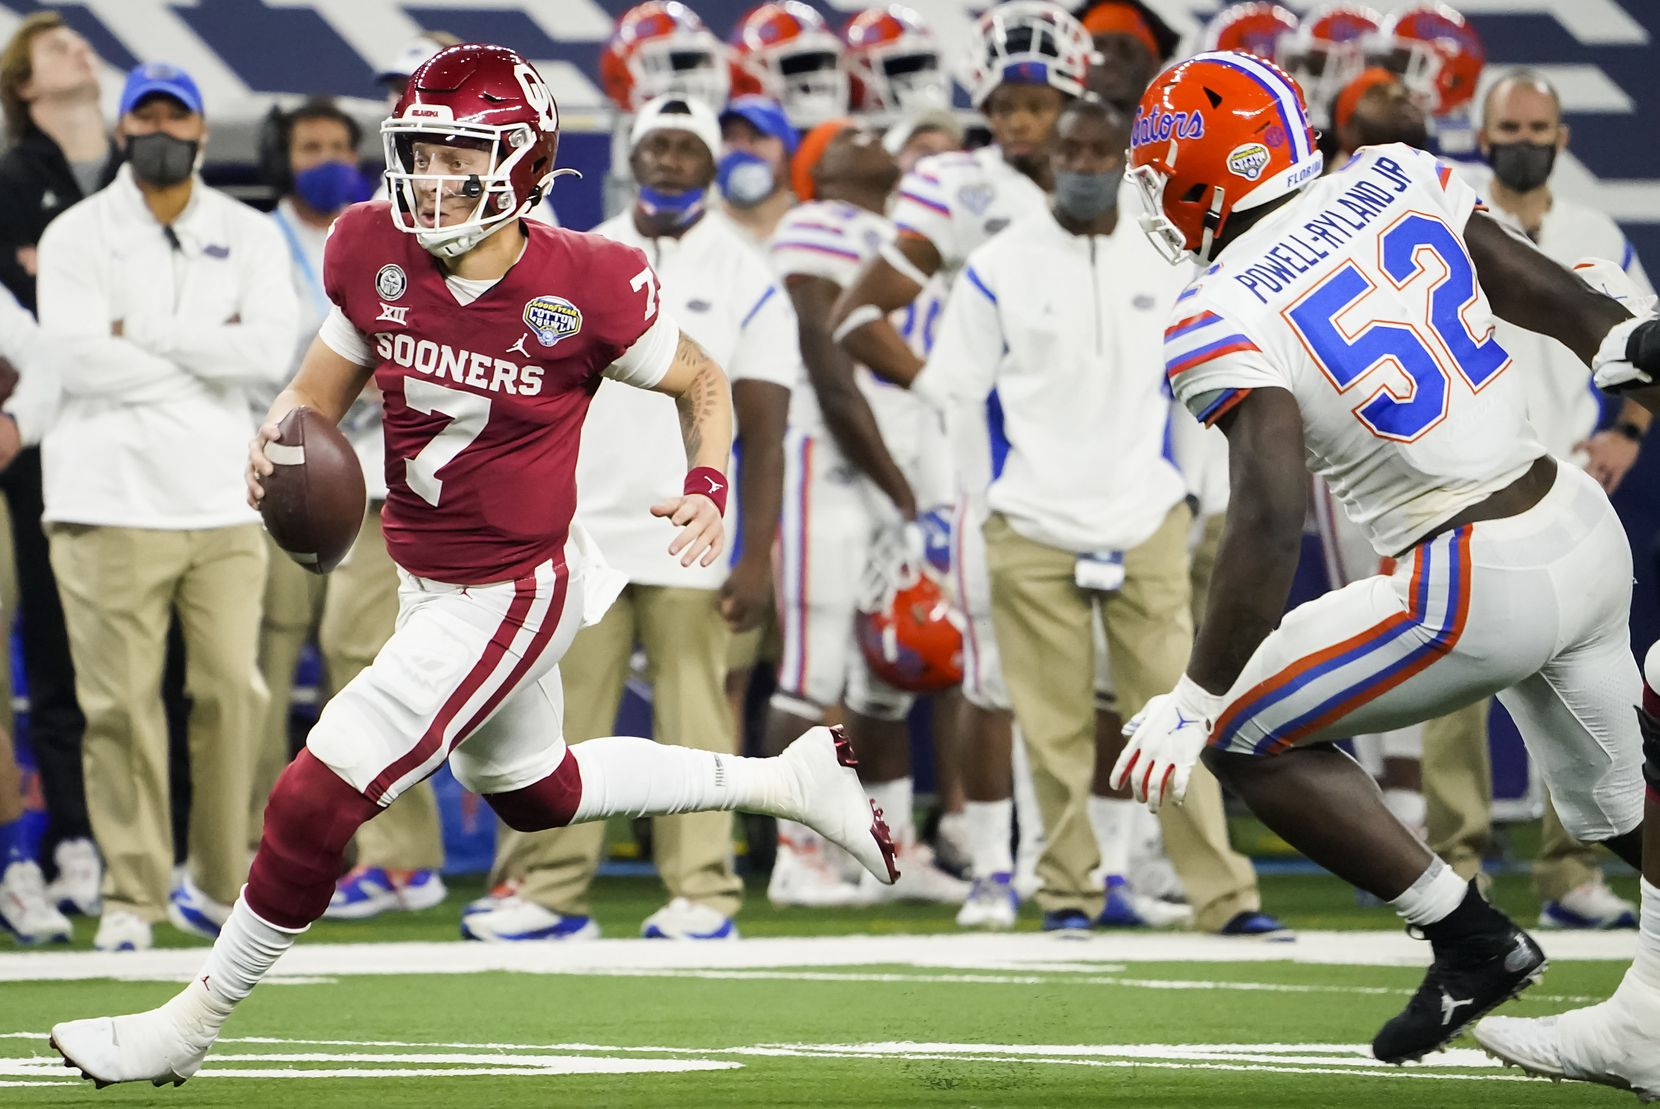 Oklahoma quarterback Spencer Rattler (7) scrambles for a first down past Florida linebacker Antwuan Powell-Ryland Jr. (52) during the second half of the Cotton Bowl Classic at AT&T Stadium on Wednesday, Dec. 30, 2020, in Arlington. (Smiley N. Pool/The Dallas Morning News)